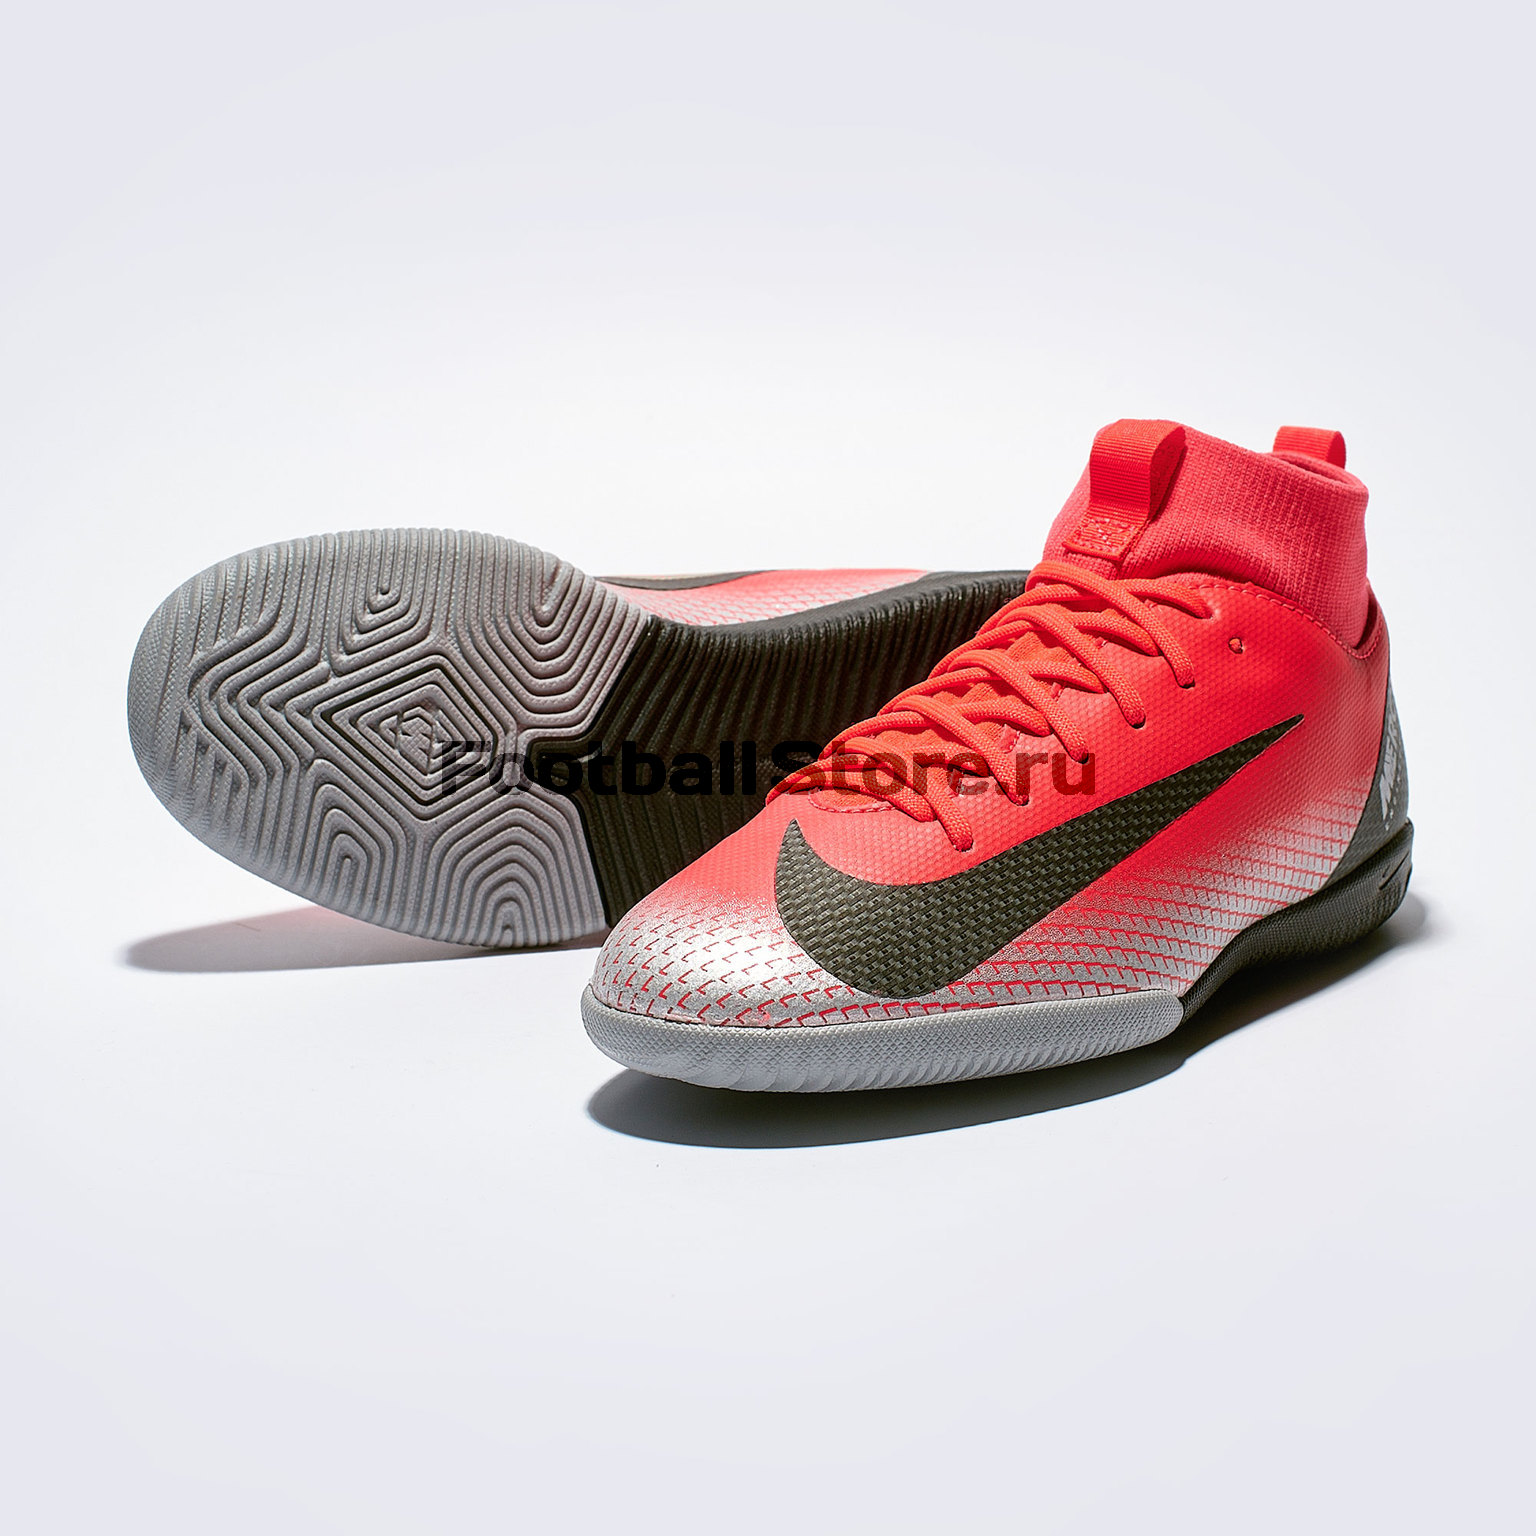 Футзалки детские Nike Superfly 6 Academy GS CR7 IC AJ3110-600 бутсы nike superfly 6 elite sg pro ac ah7366 060